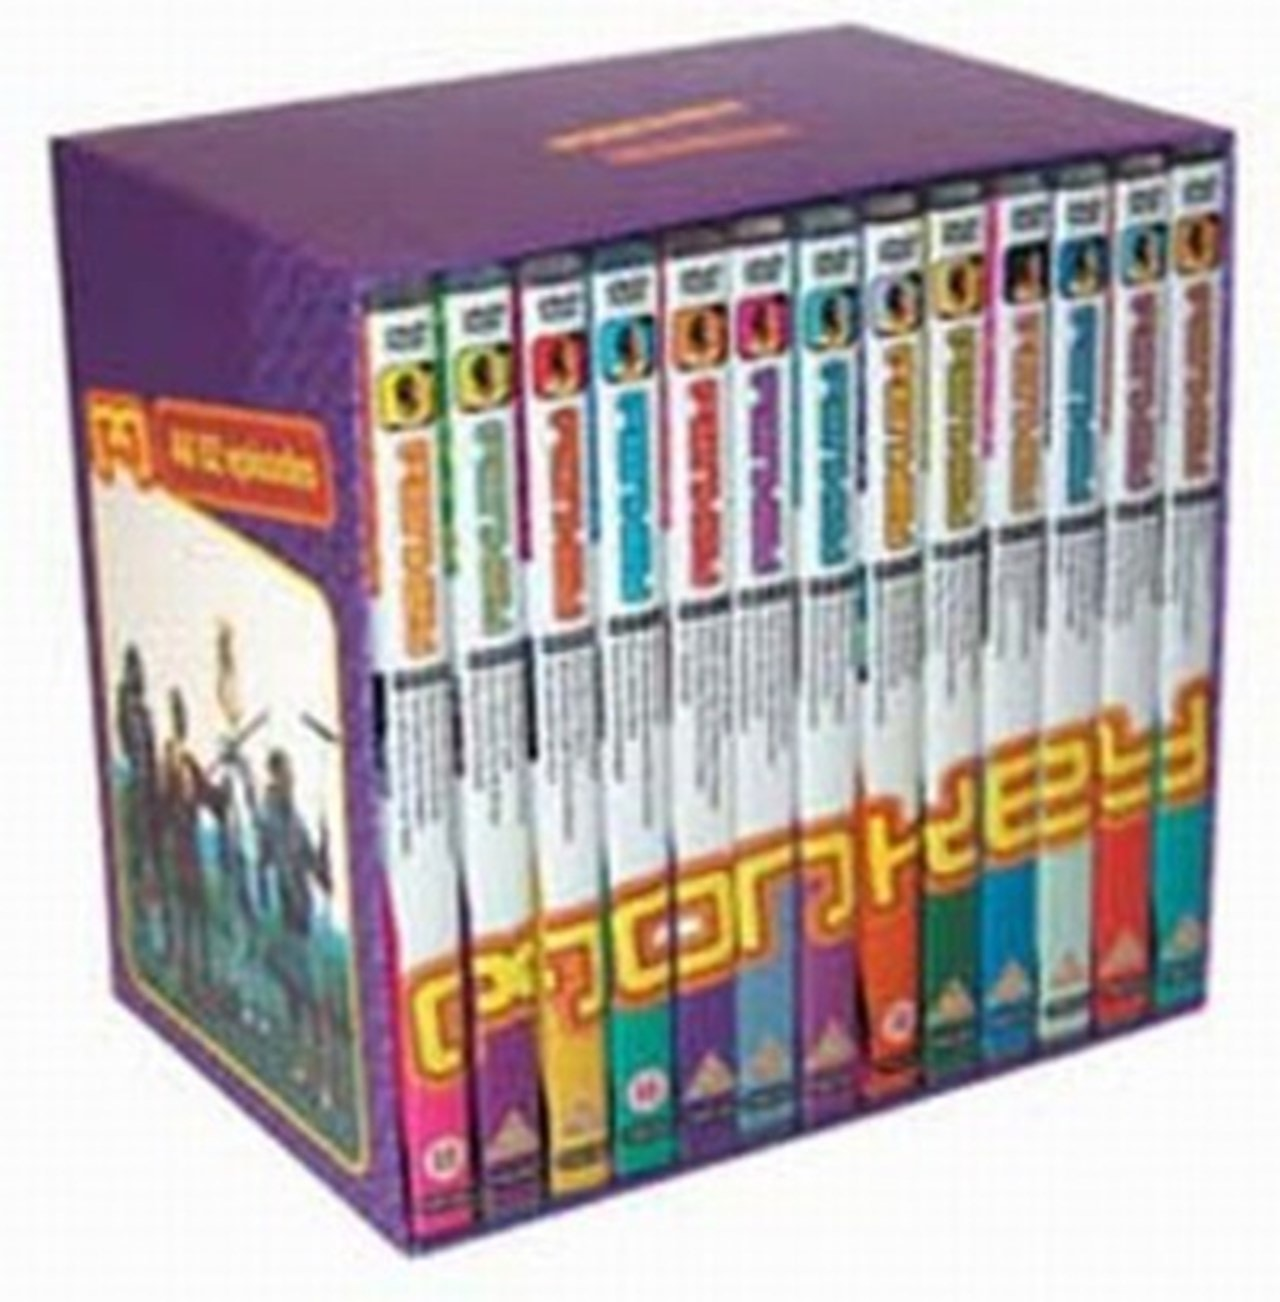 Monkey The Complete Collection Dvd Box Set Free Shipping Over 20 Hmv Store